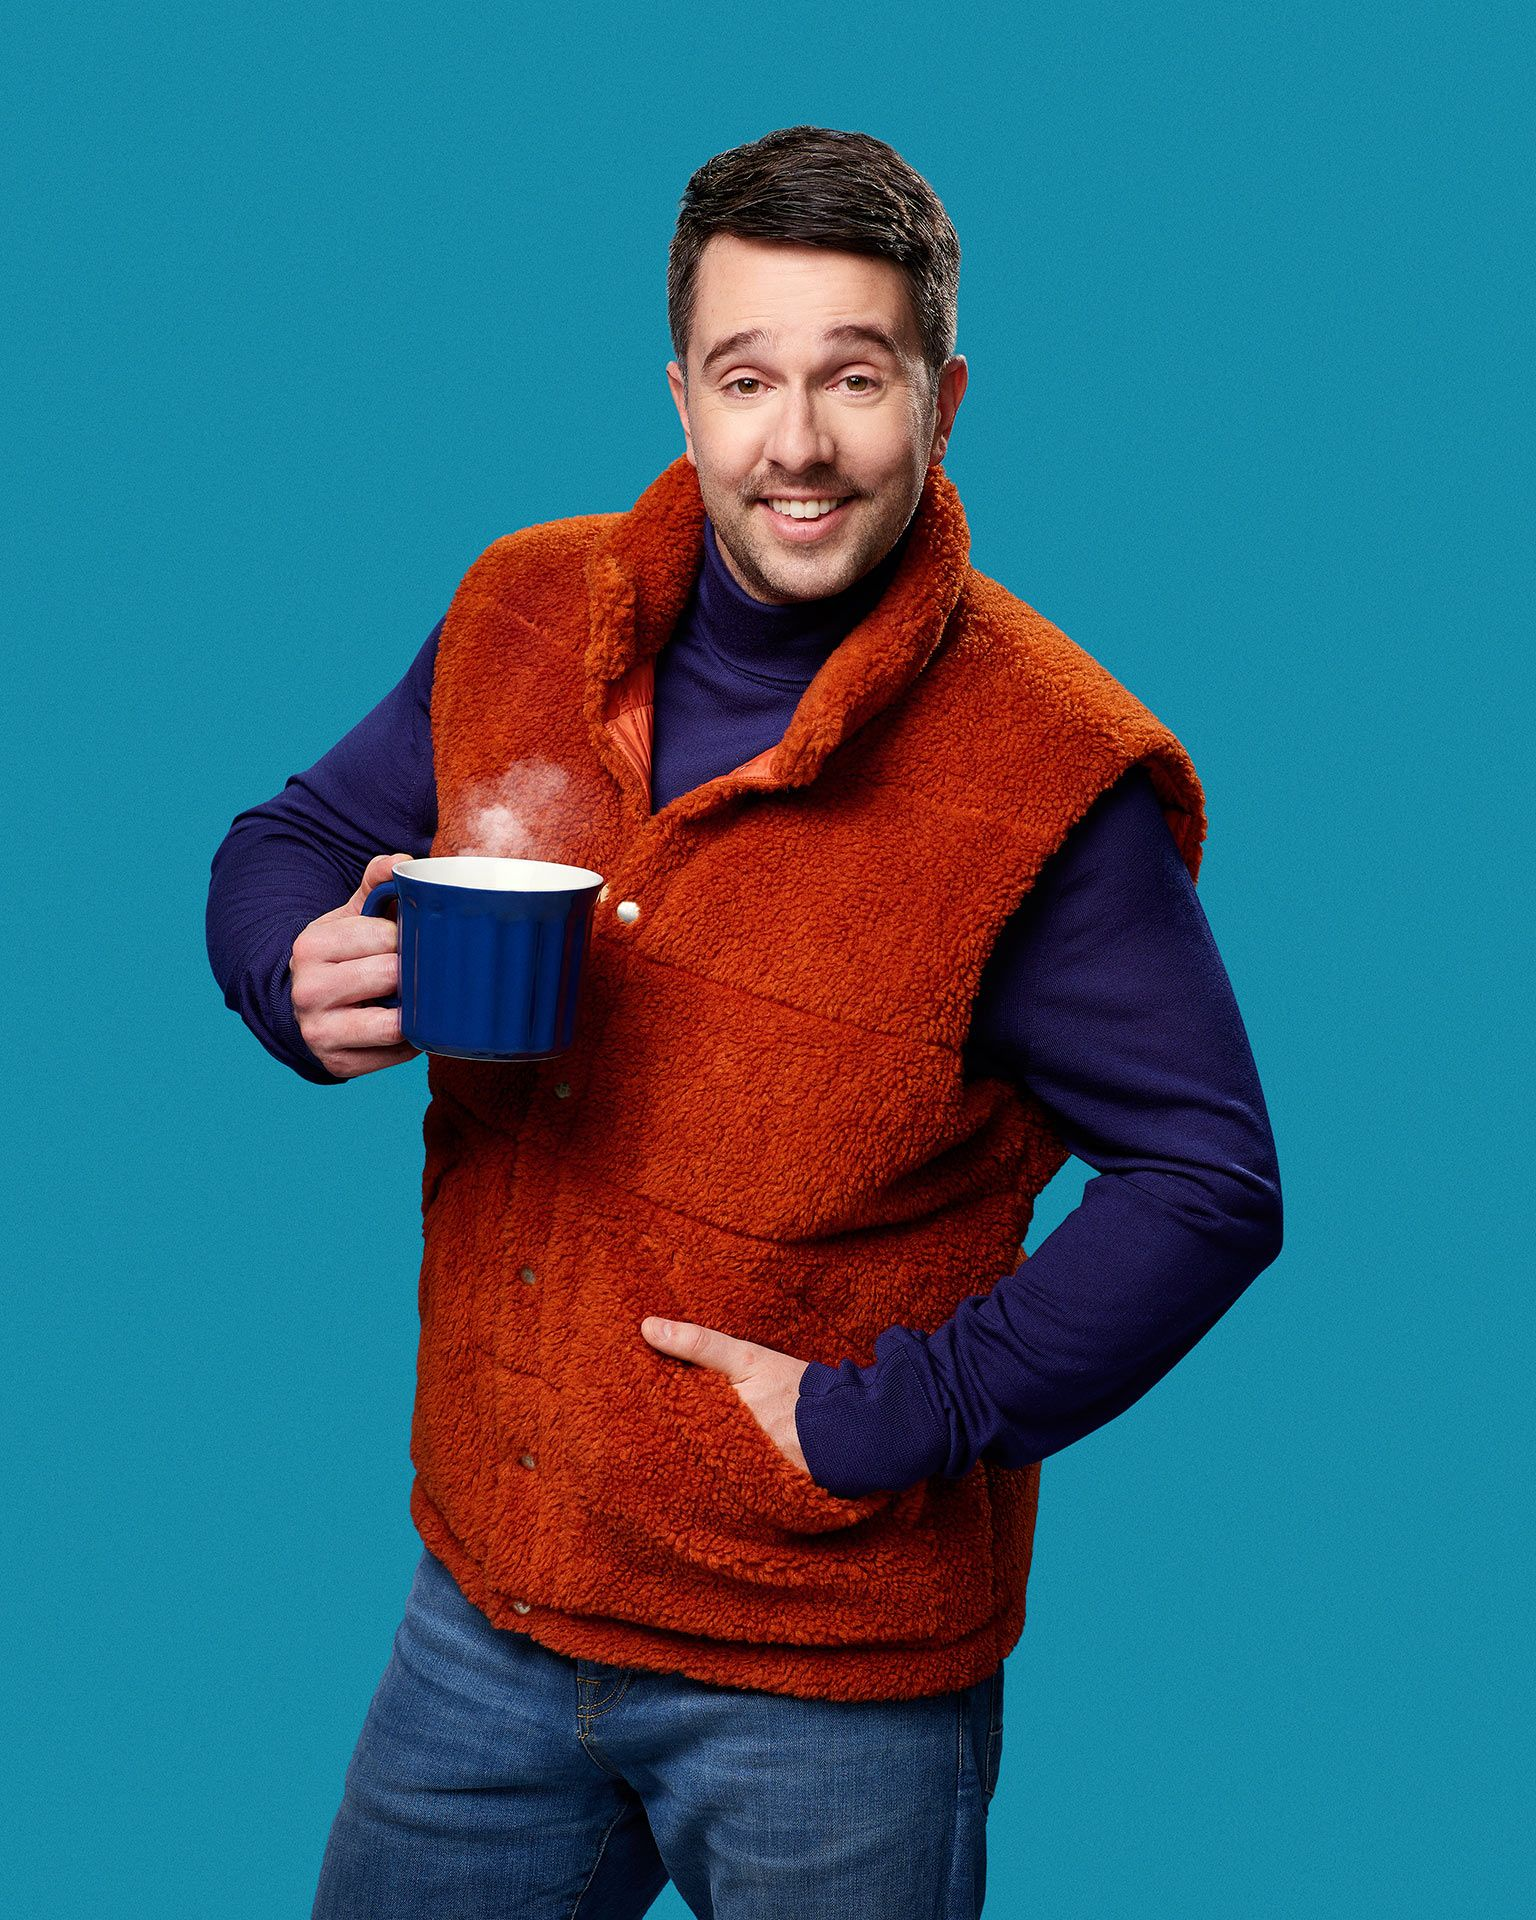 picture of humorist Alexandre Barrette dressed awkwardly in purple sweater orange armless vest mug in hand for show semi-croquant by Jocelyn Michel